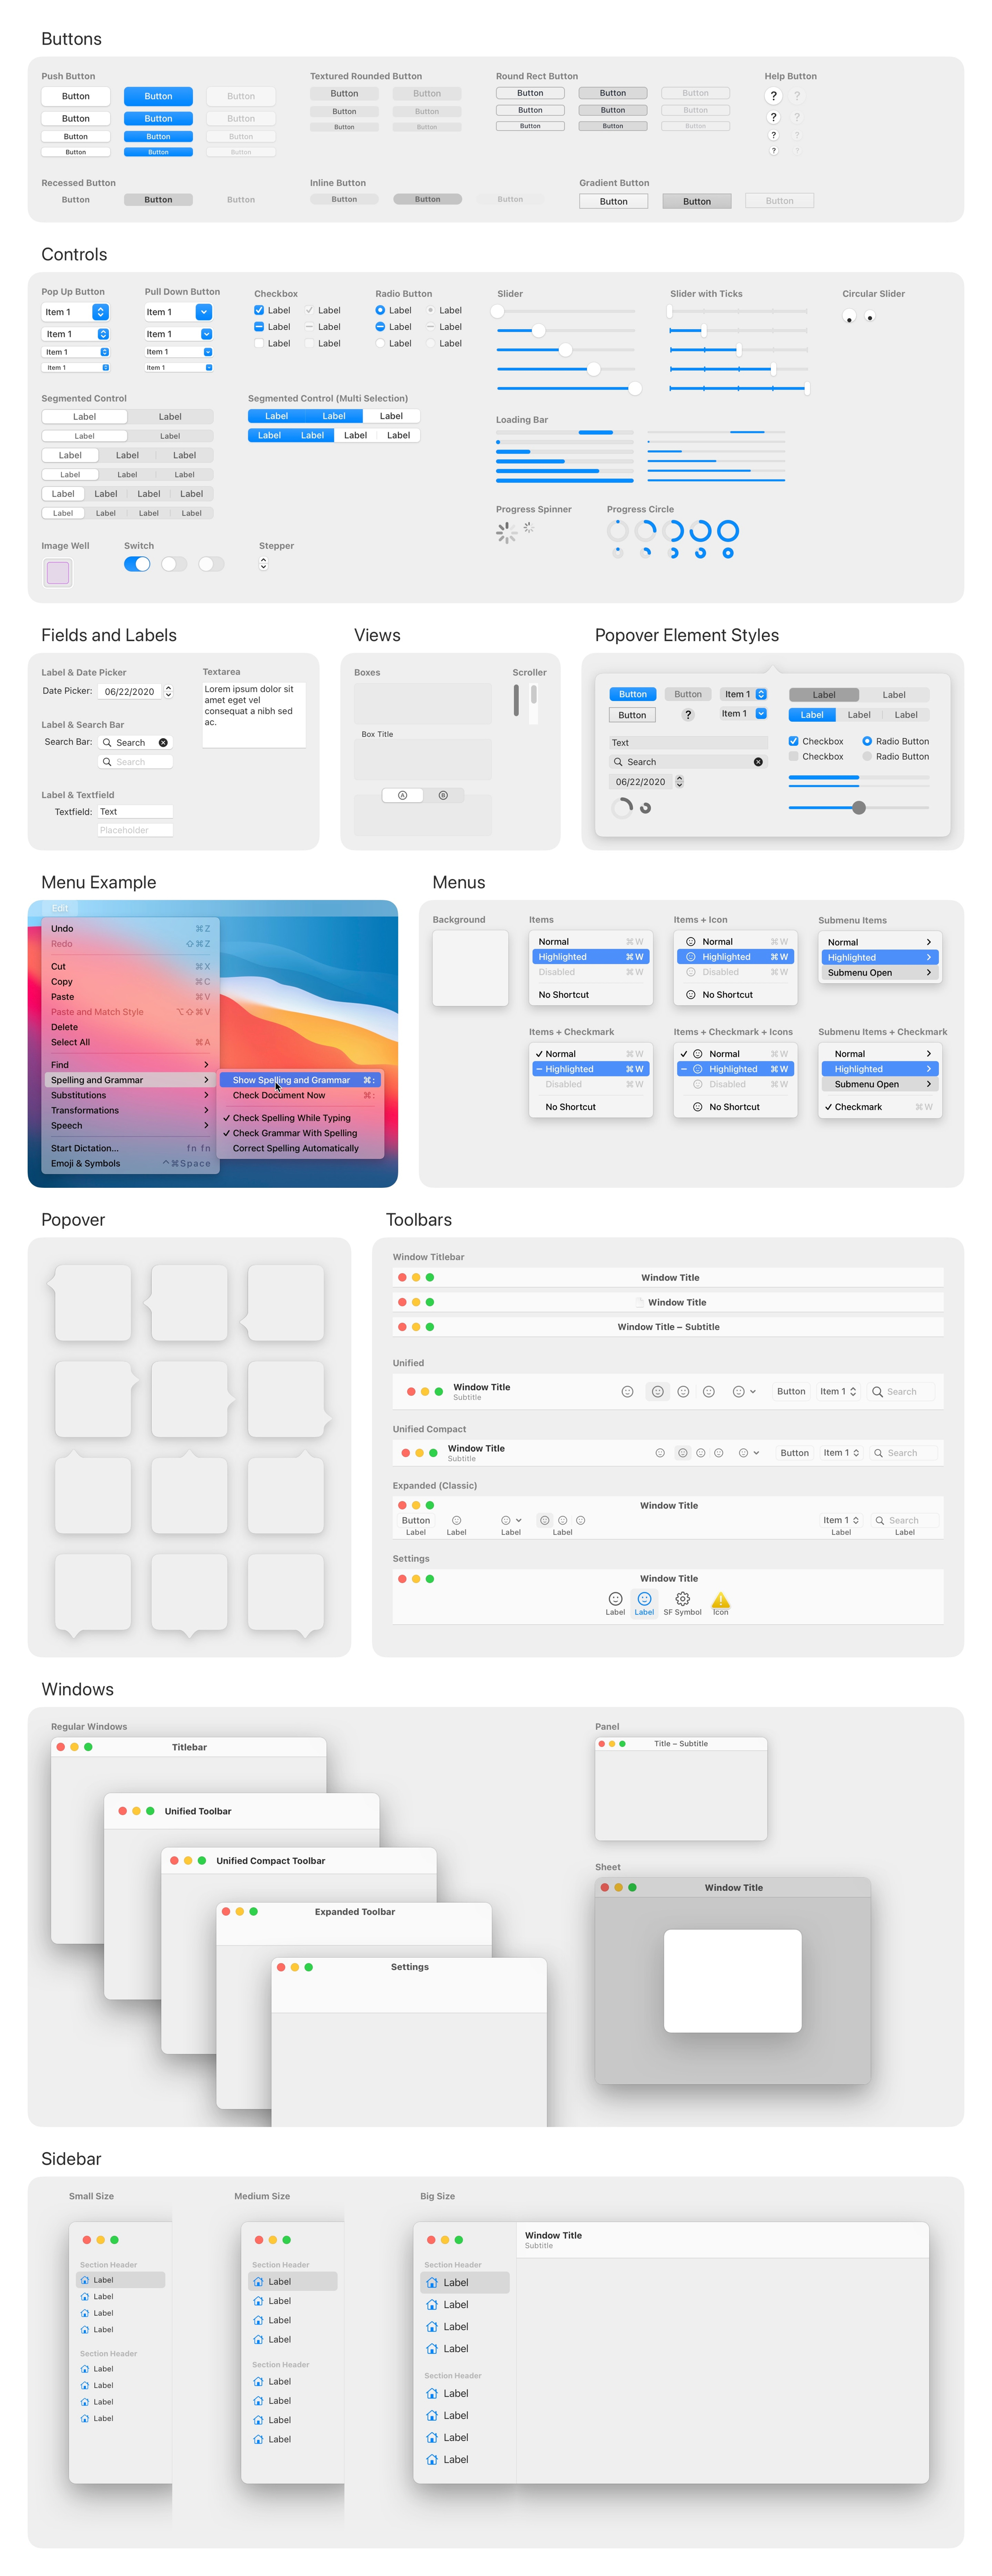 macOS 11 Big Sur Free UI Kit for Sketch - Get the incredibly detailed and most accurate macOS UI Kit for Sketch. The library is loaded with hundreds of components, colors, and text styles. Arguably the fastest way to get started with your Mac app designs.